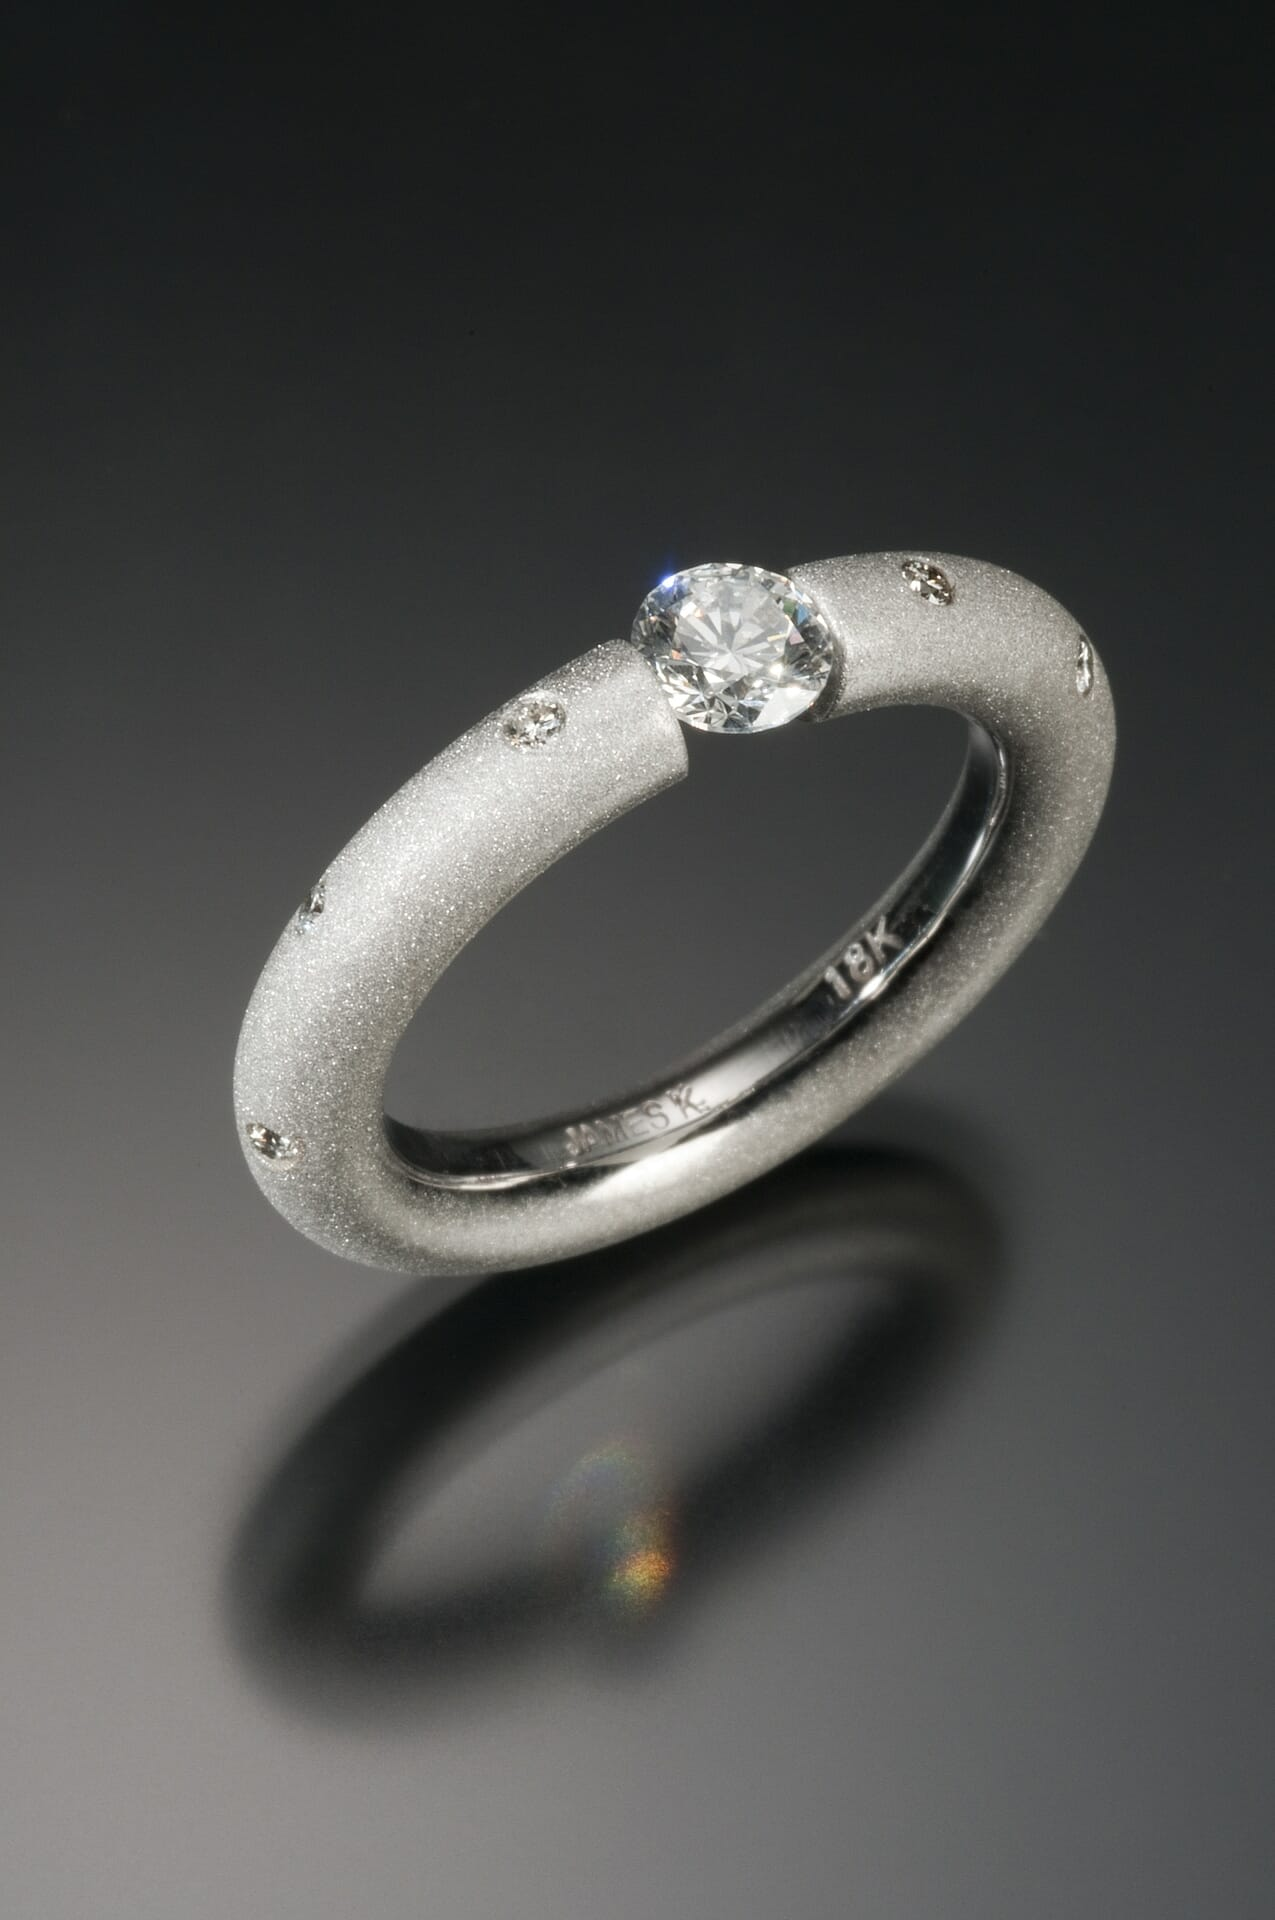 product contemp toweb category wedeng images p element rings wedd contemporary jewellery wedding